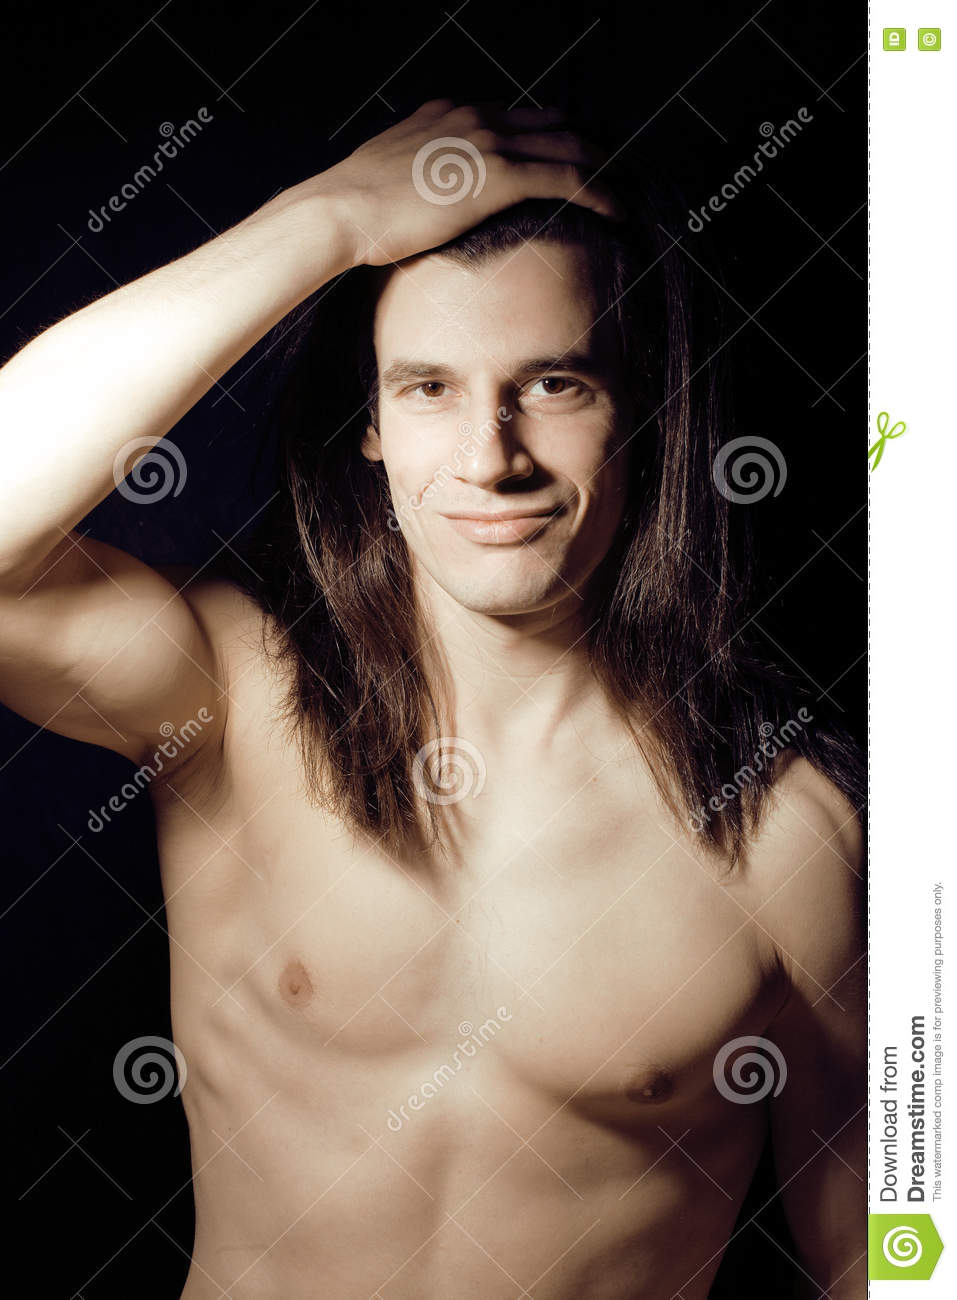 Naked guy with long hair